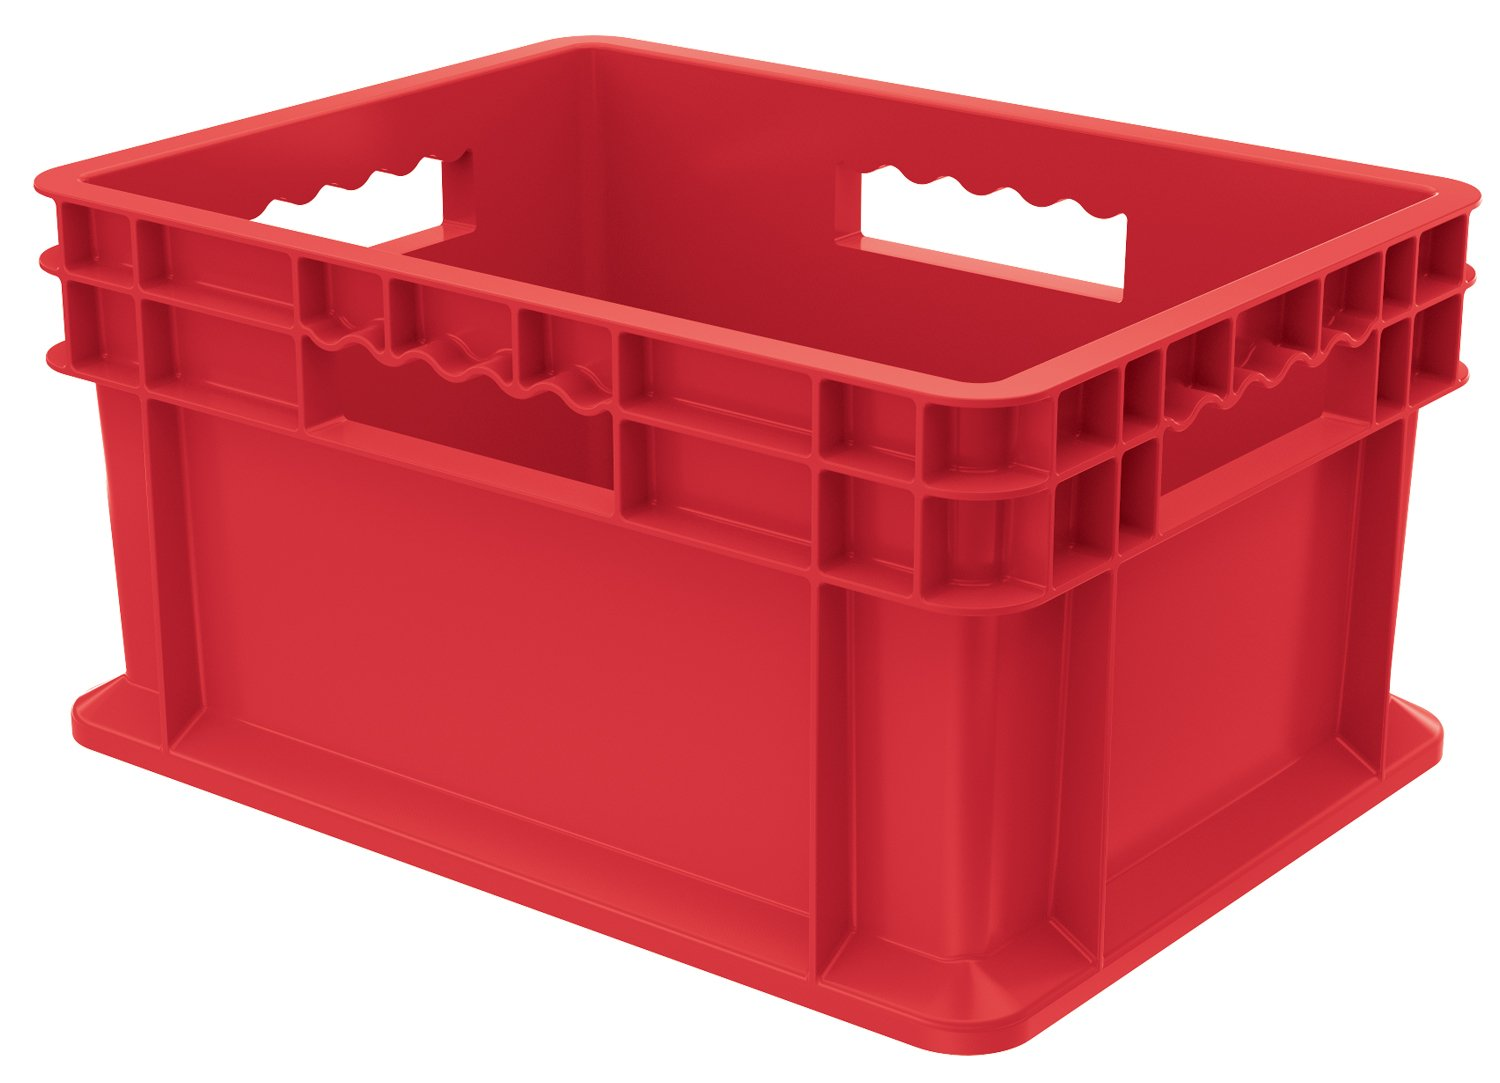 Akro-Mils 37288RED 16-Inch by 12-Inch by 8-Inch Straight Wall Container Plastic Tote with Solid Sides and Solid Base, Case of 12, Red